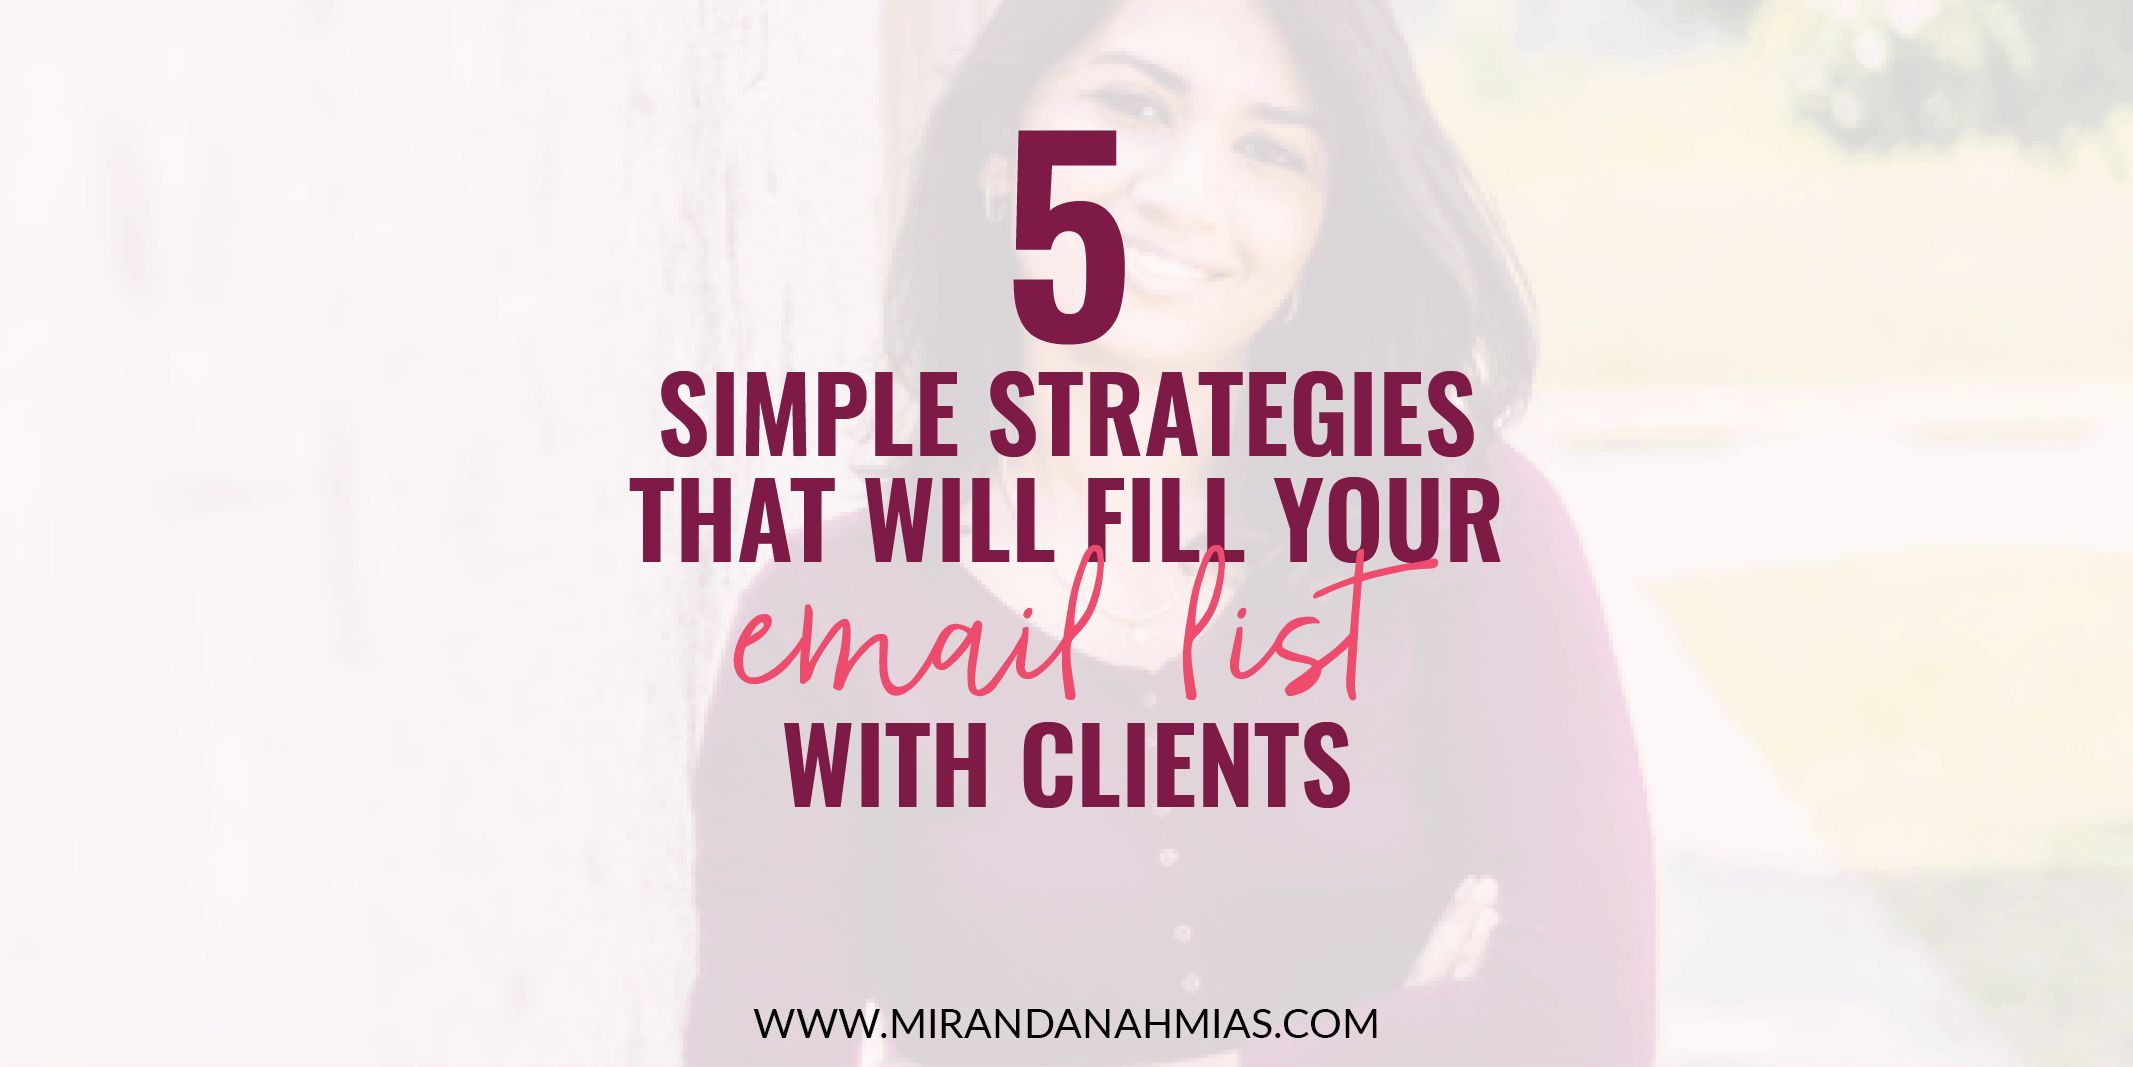 5 Simple Strategies That Will Fill Your Email List With Clients